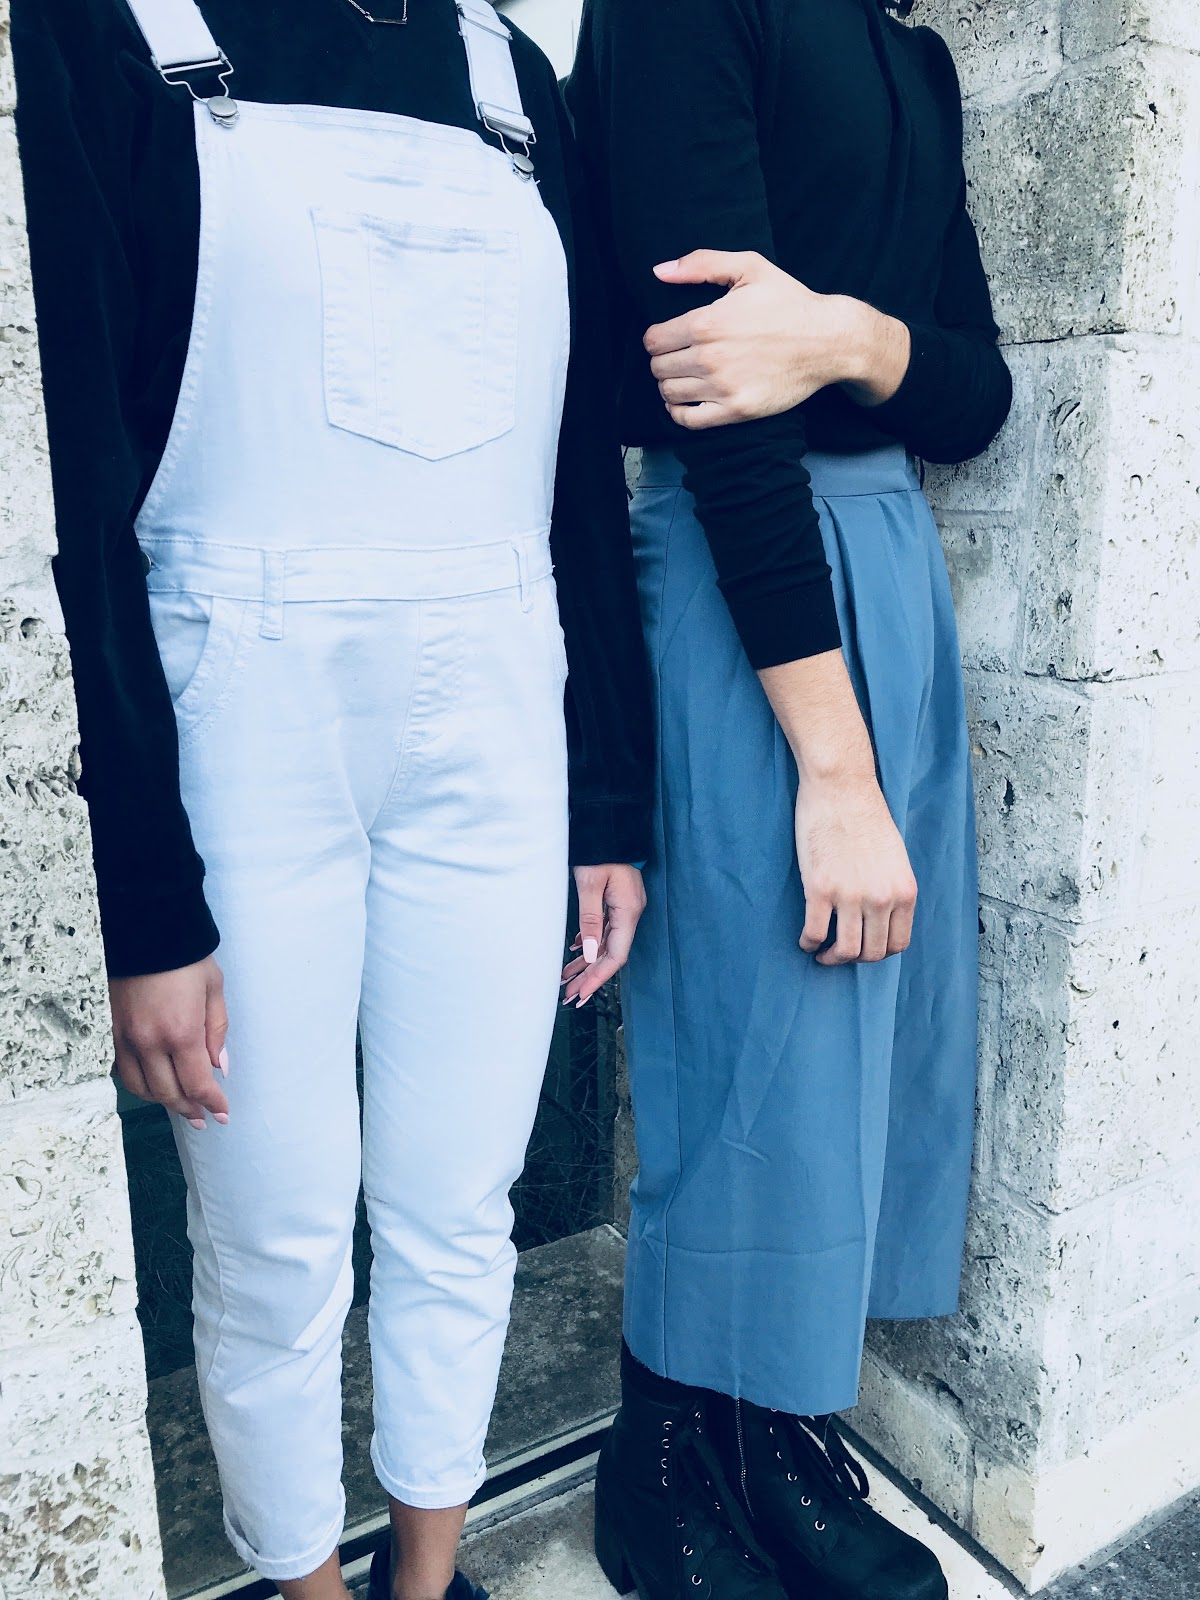 Jessica Teran writes on unisex minimalist clothing lines for children and how it is mirroring society's acceptance of gender neutrality